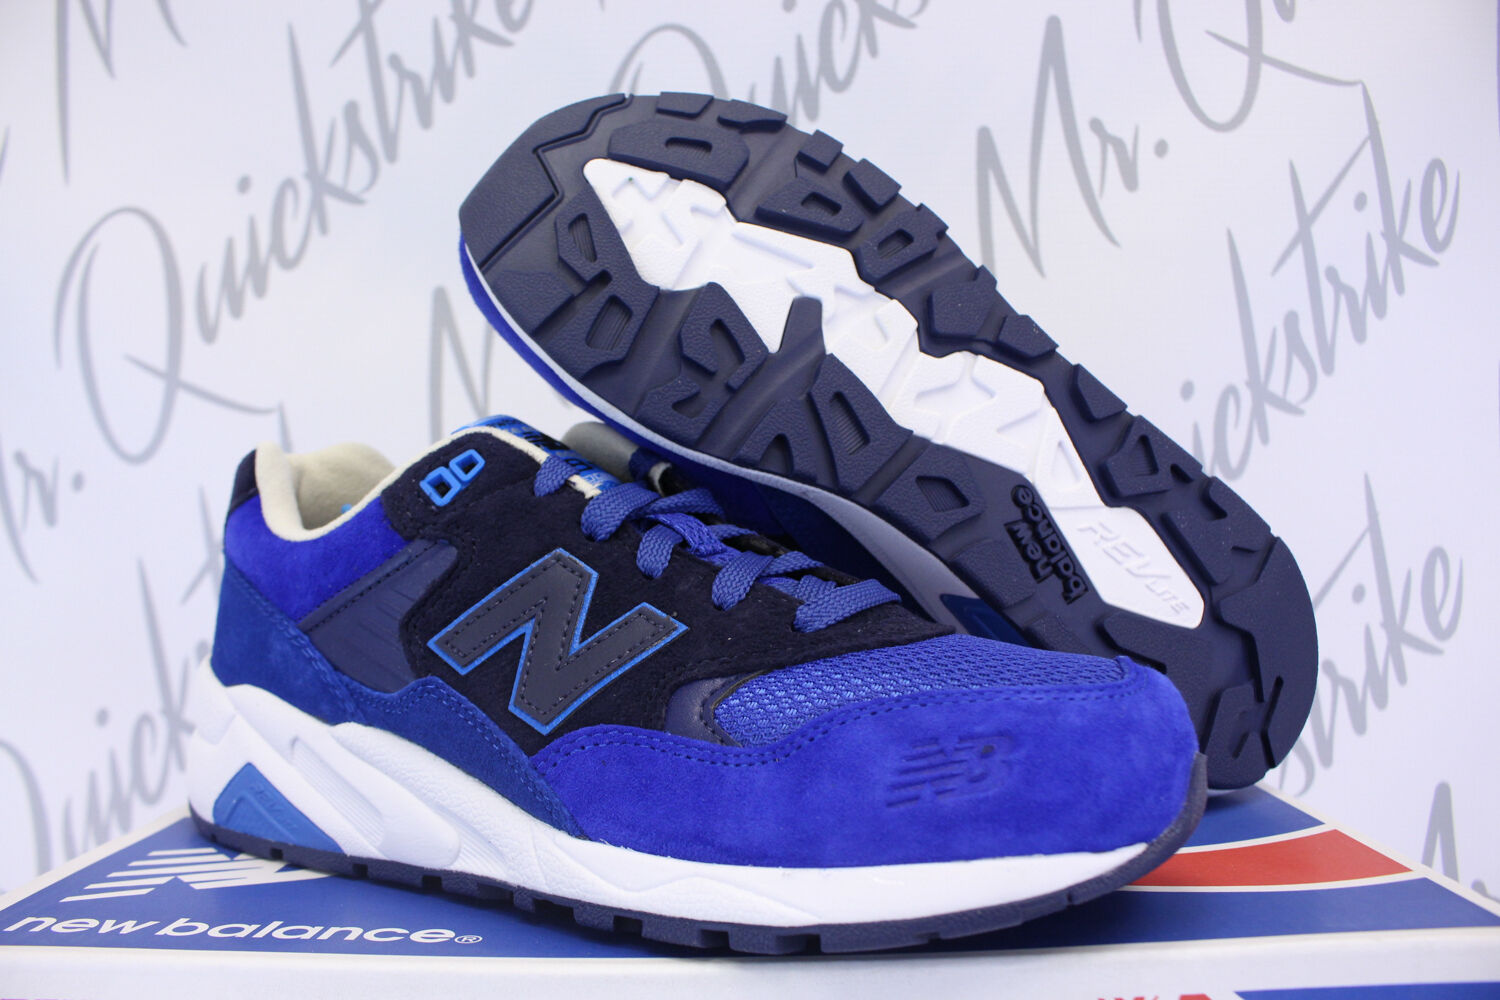 NEW BALANCE 580 SZ 7 SAILOR ELITE EDITION PAPER LIGHTS SAILOR 7 PACIFIC BLUE MRT580RA 6e7d26